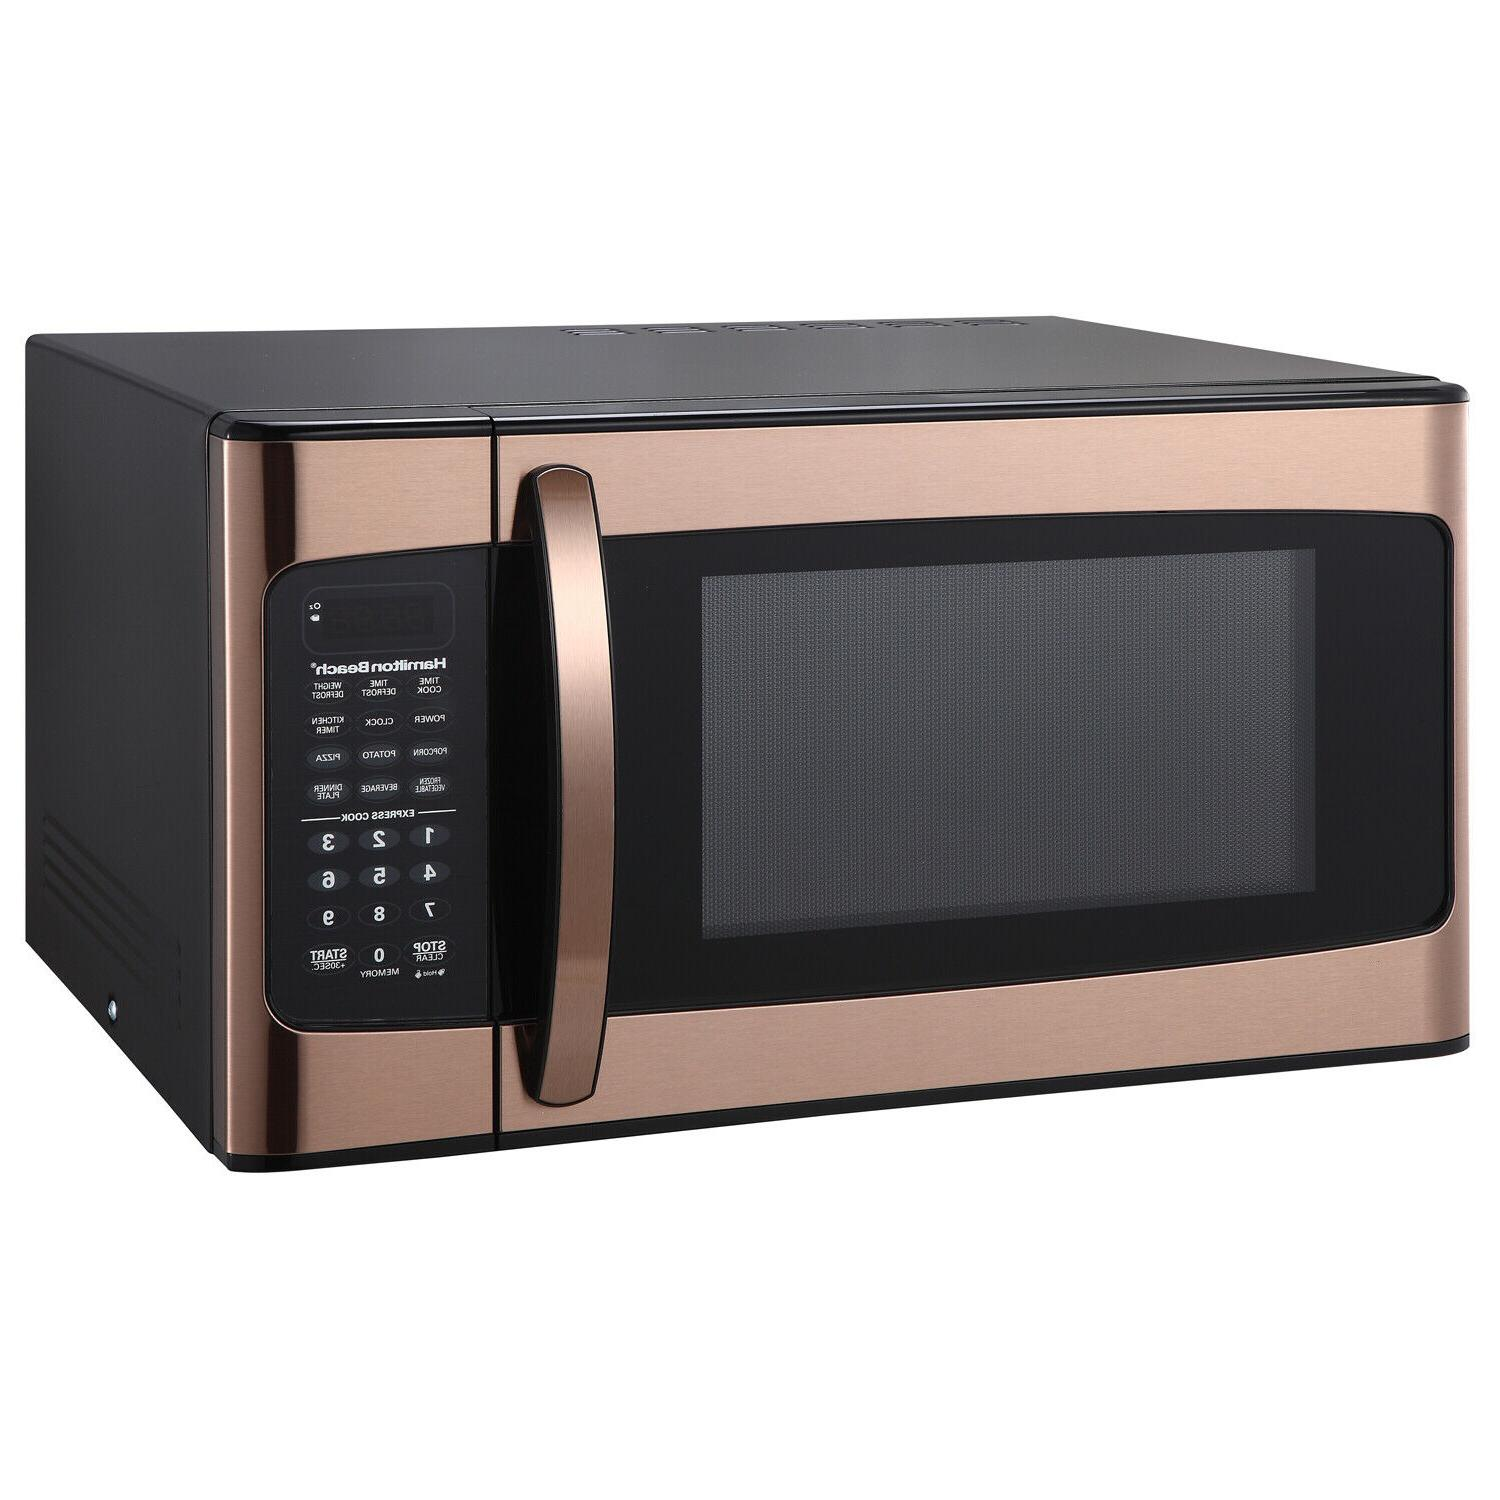 COPPER 1.1 Cu. Oven 1000W countertop cooking